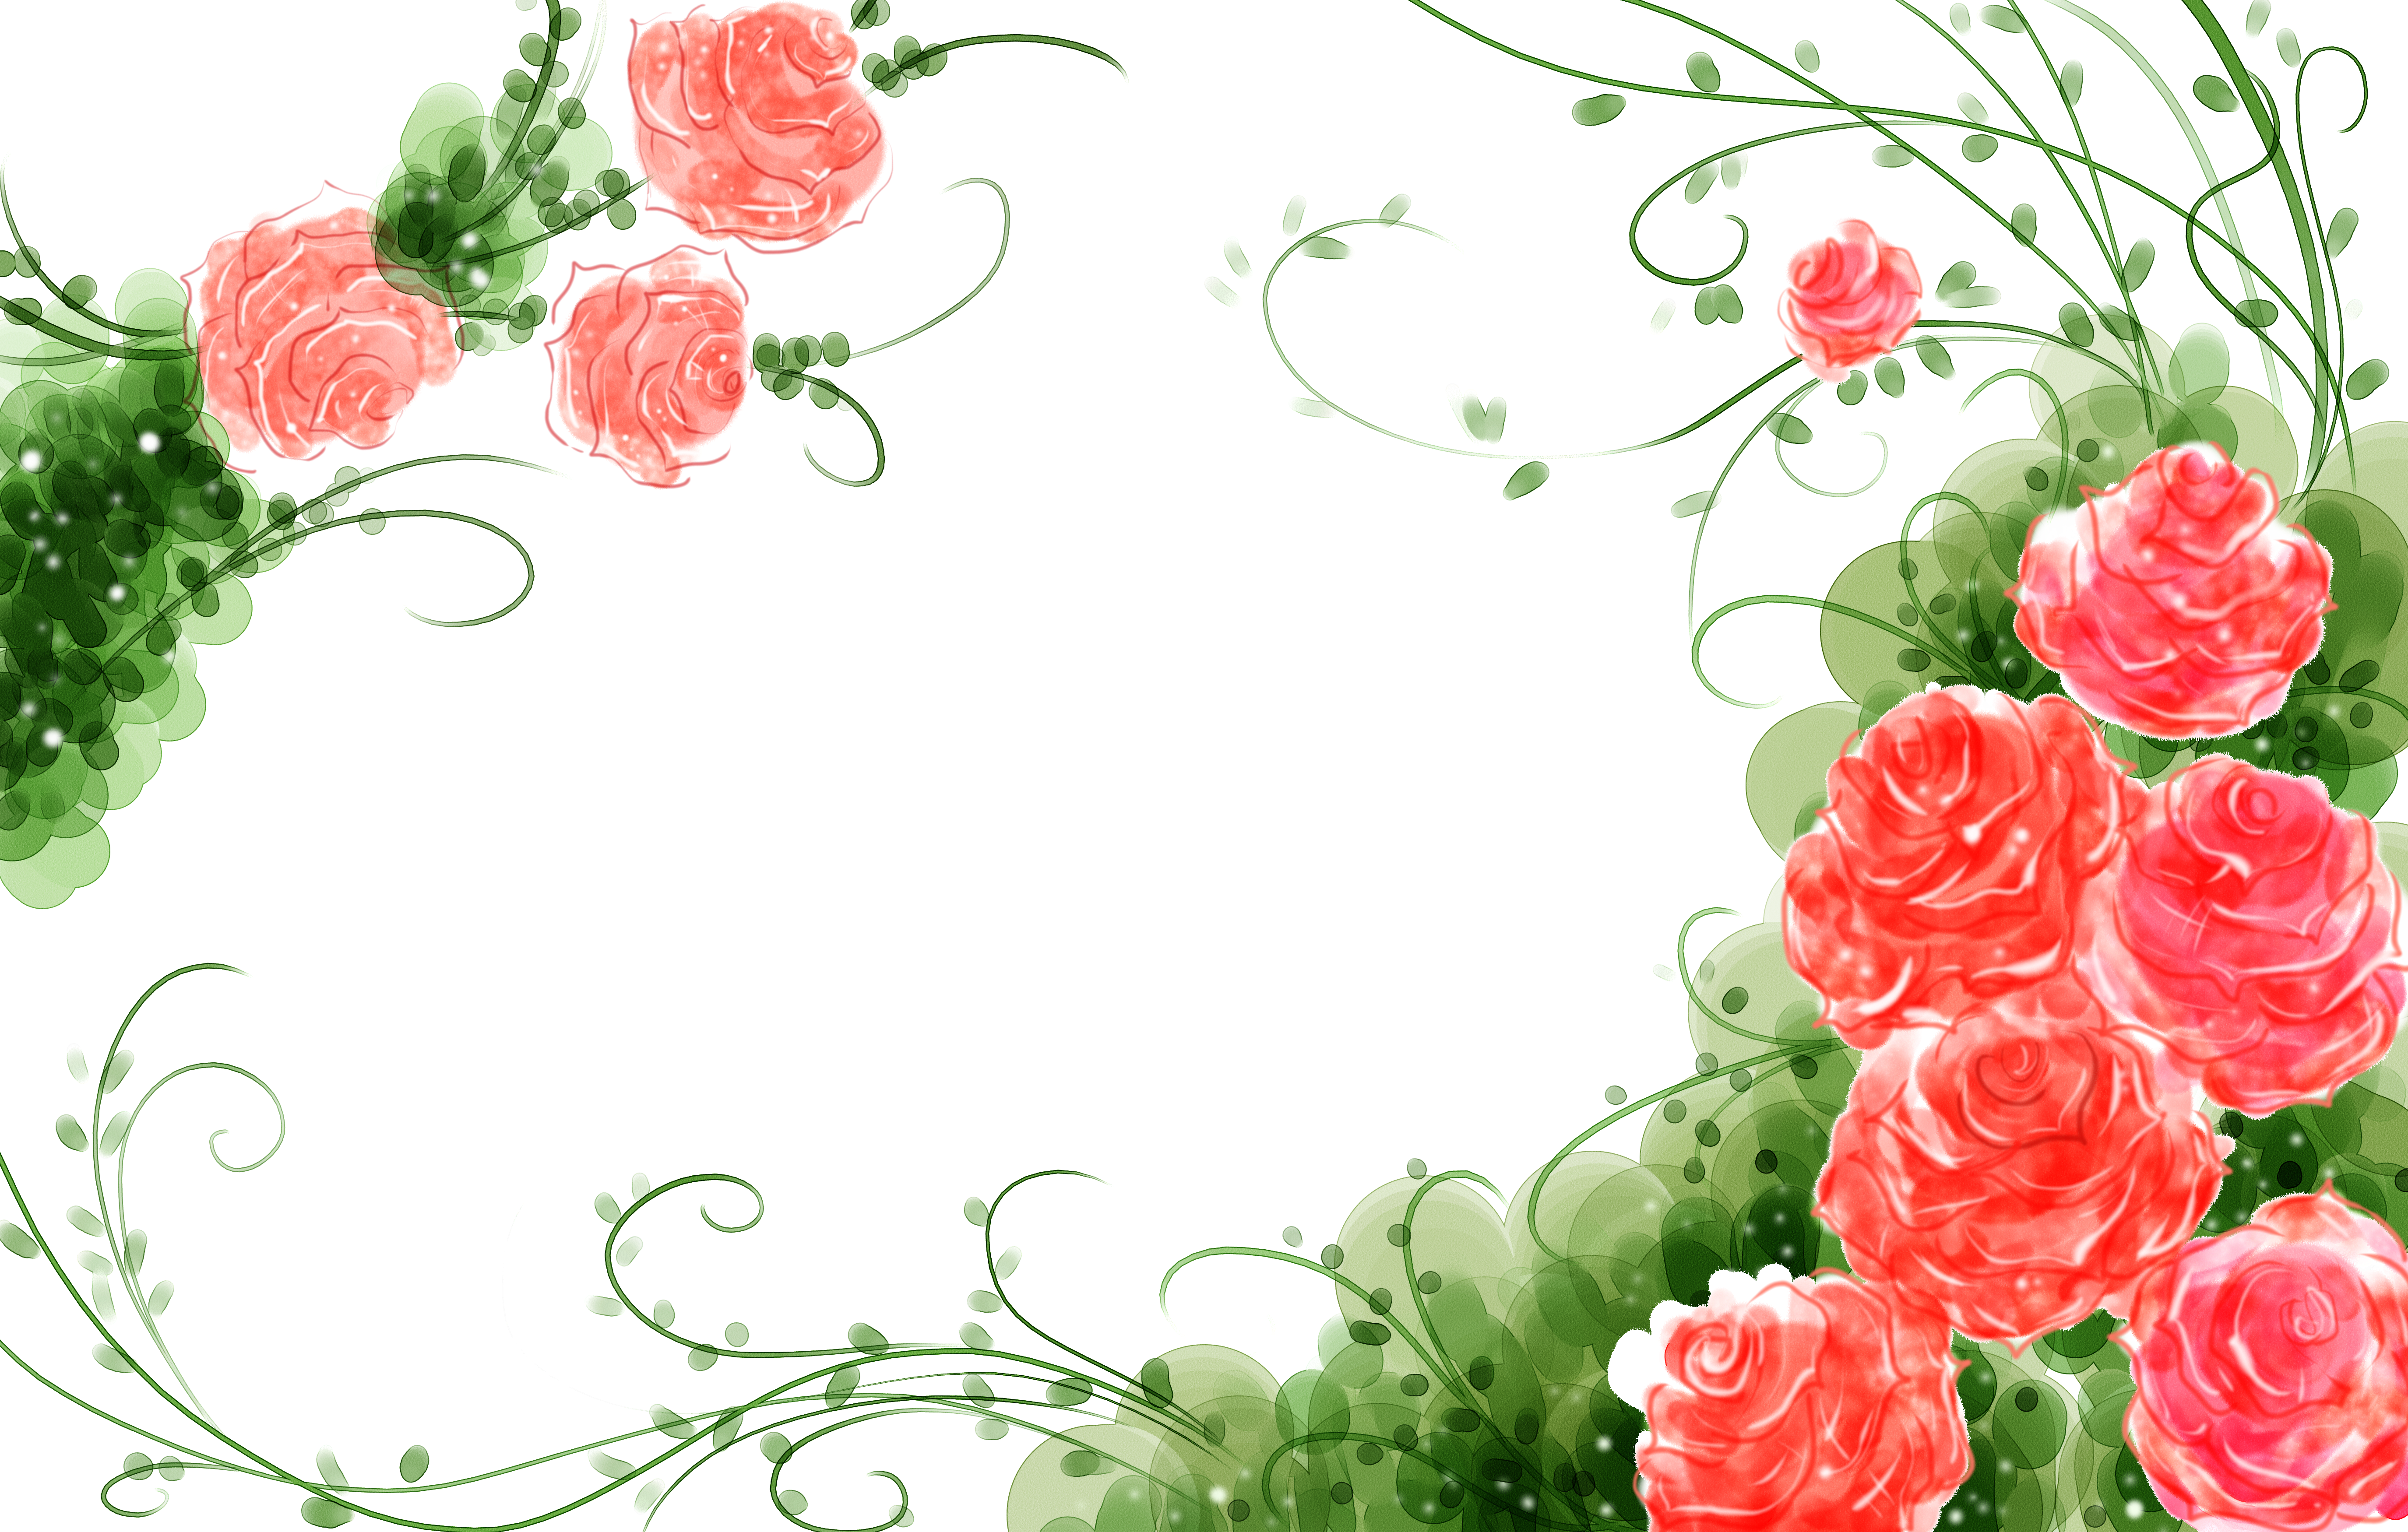 Flower garden background clipart picture transparent library Garden roses Flower Watercolor painting Illustration - Watercolor ... picture transparent library